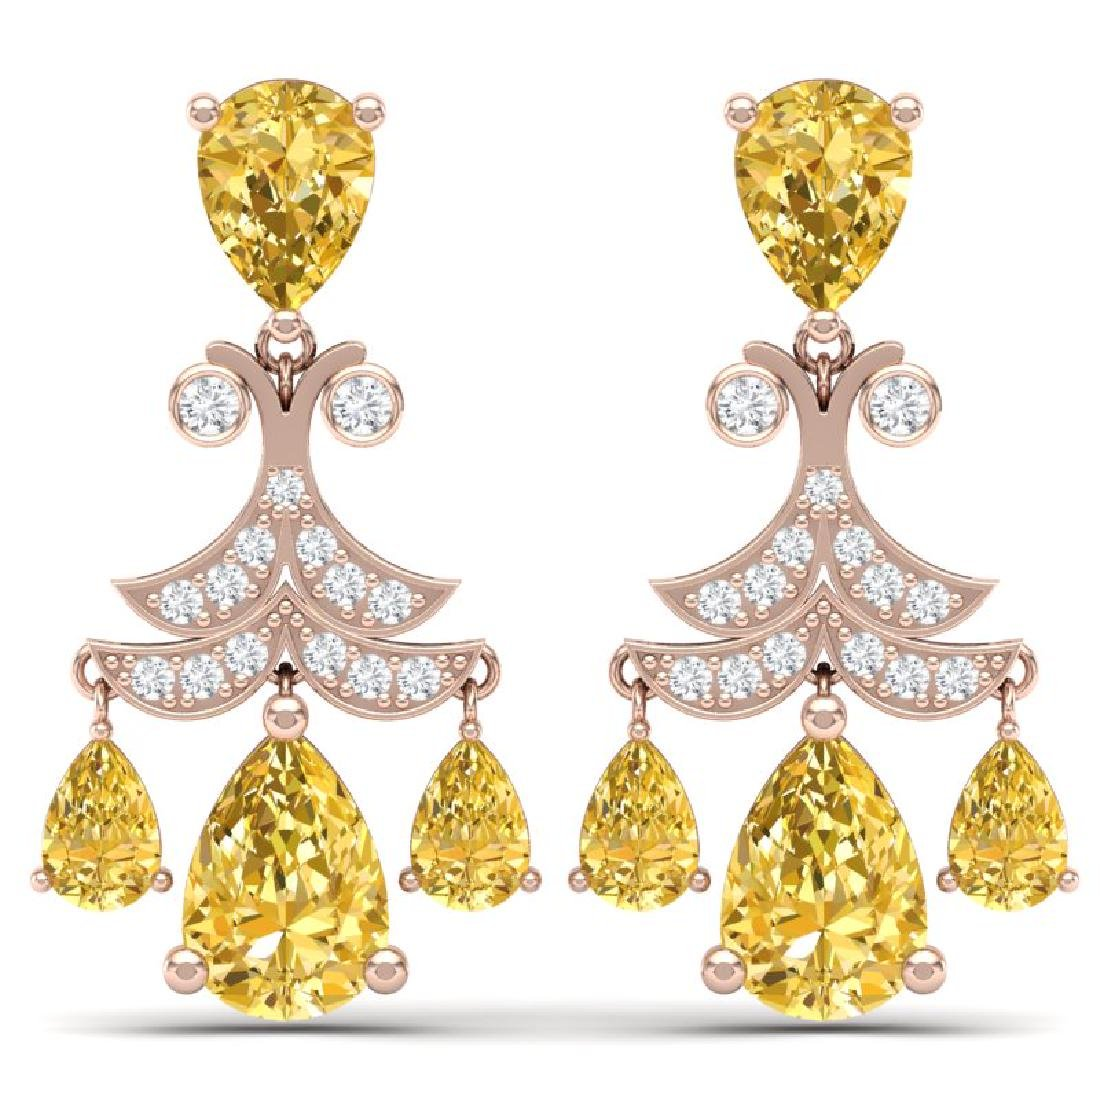 10.41 CTW Royalty Canary Citrine & VS Diamond Earrings